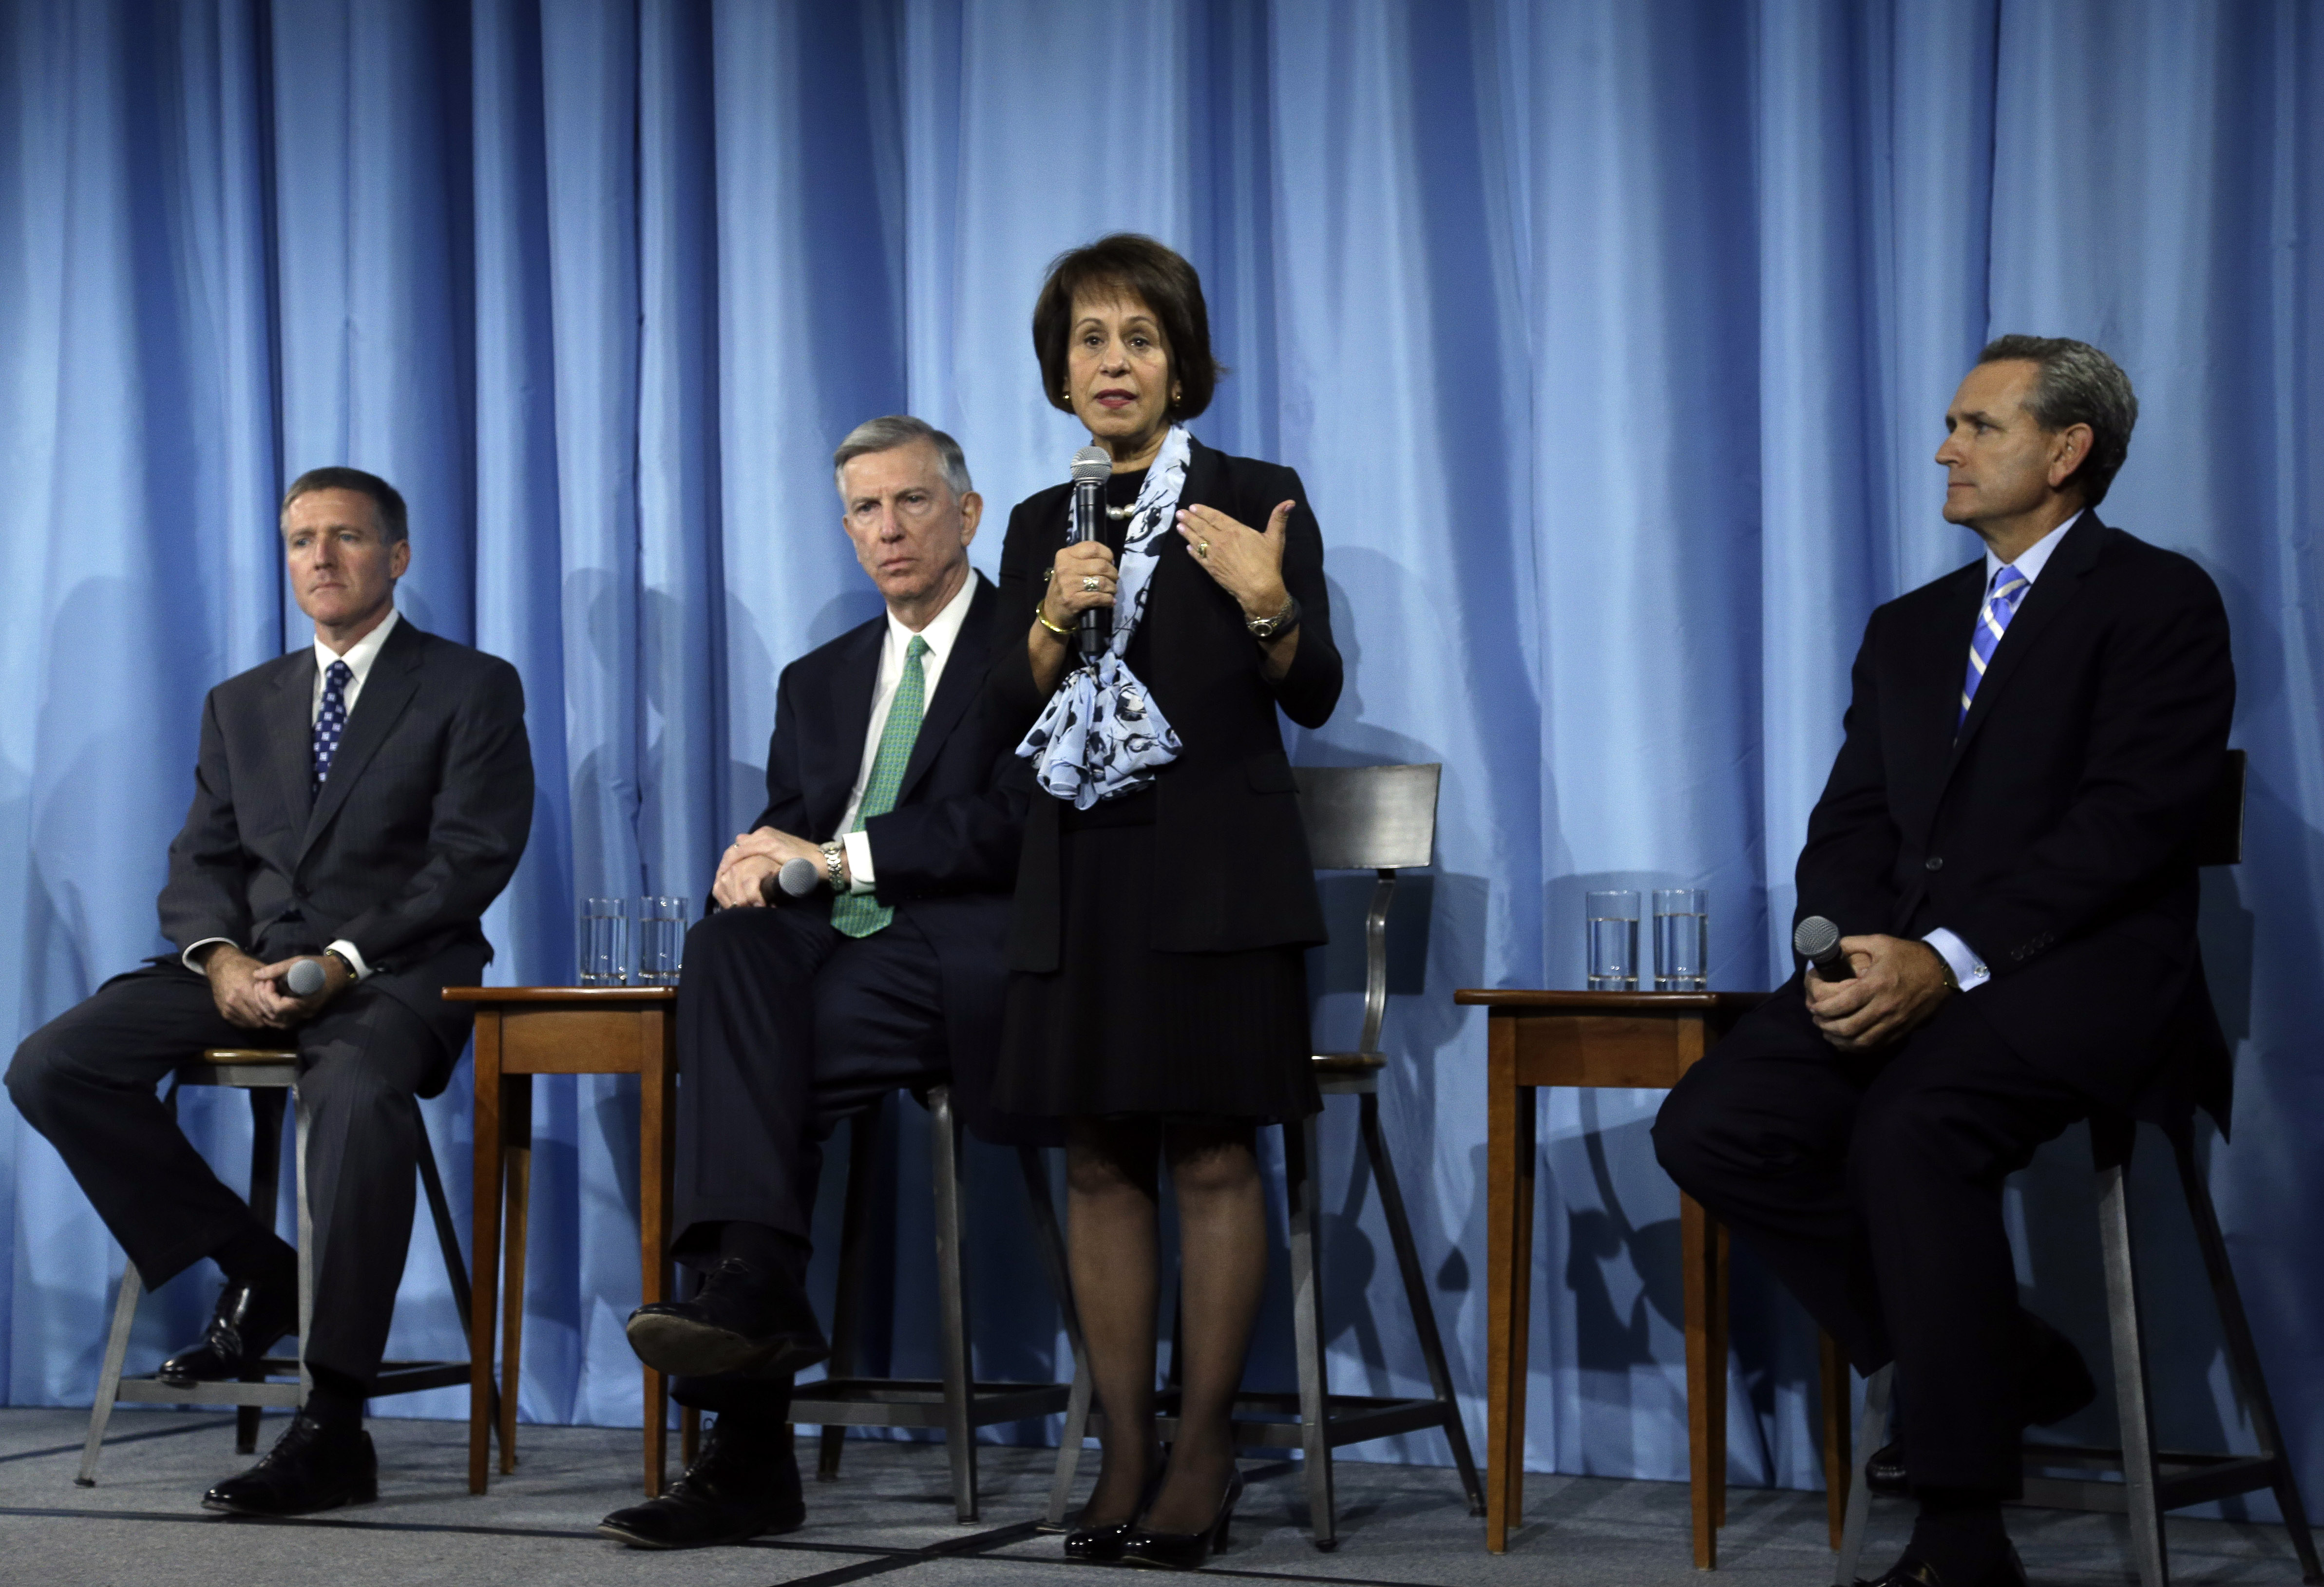 FILE - In this Oct. 22, 2014, file photo, University of North Carolina Chancellor Carol Folt, center, addresses the media following a special joint meeting of the University of North Carolina Board of Governors and the UNC-Chapel Hill Board of Trustees in